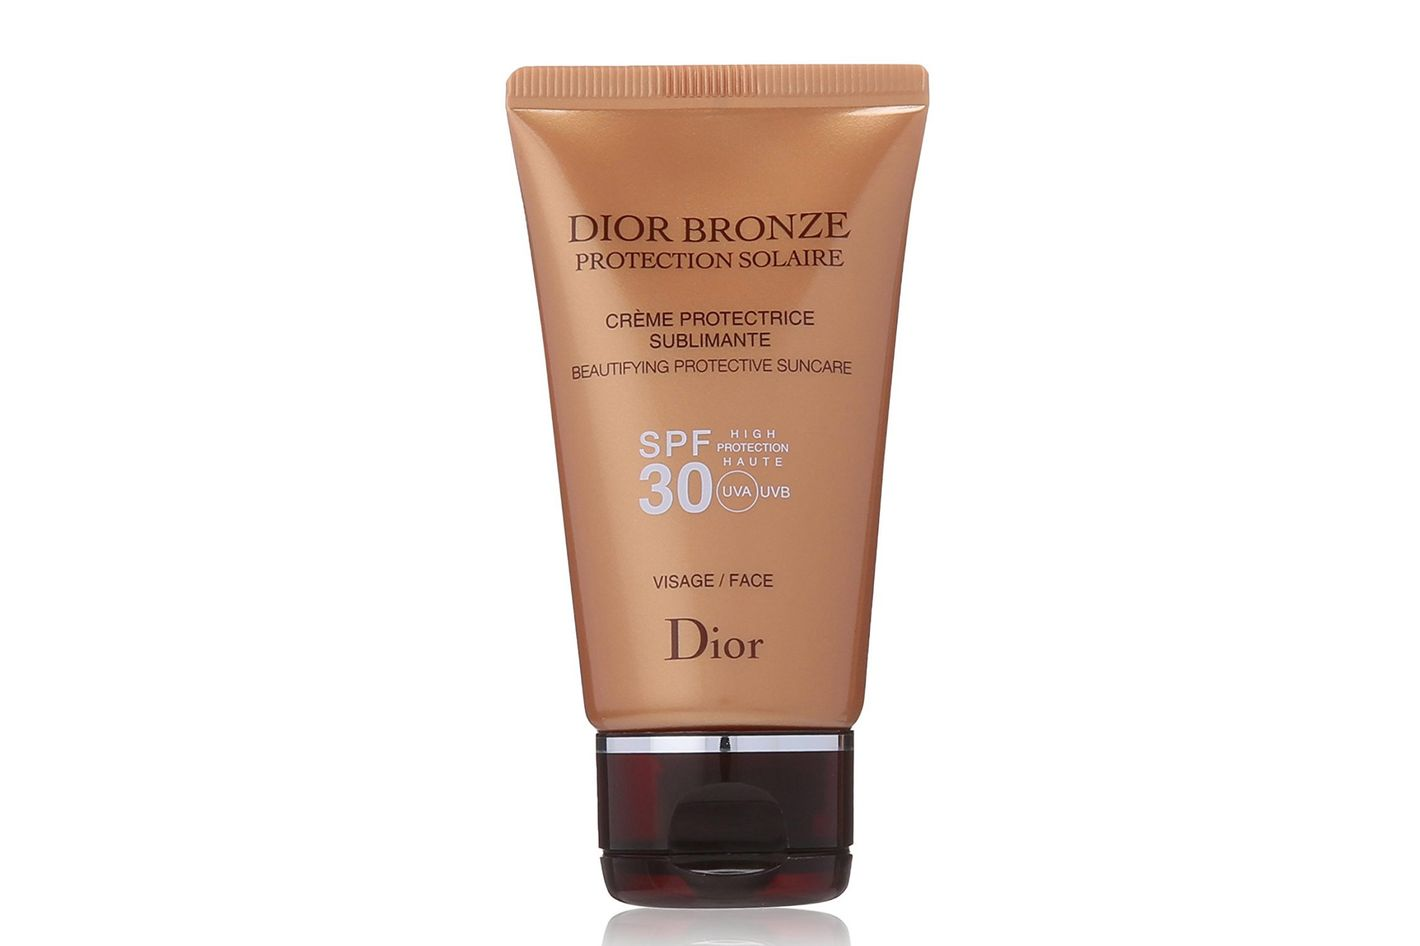 Dior Protective Crème Sublime Glow SPF 30